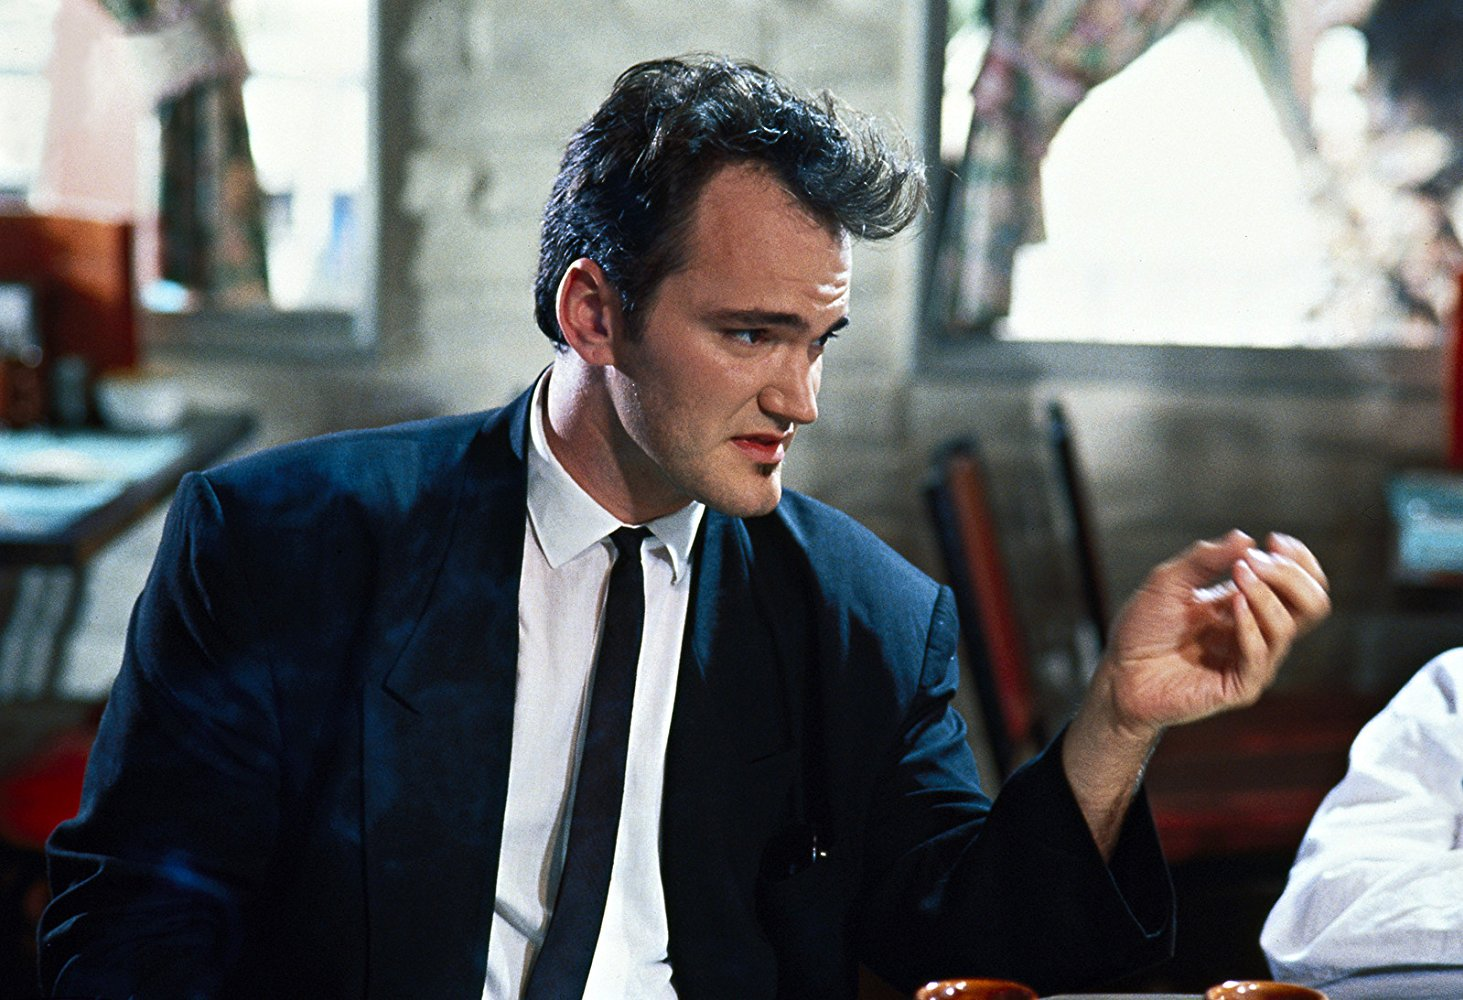 Happy Birthday to Quentin Tarantino! We\d like to thank you for producing some of our favorite movies around.